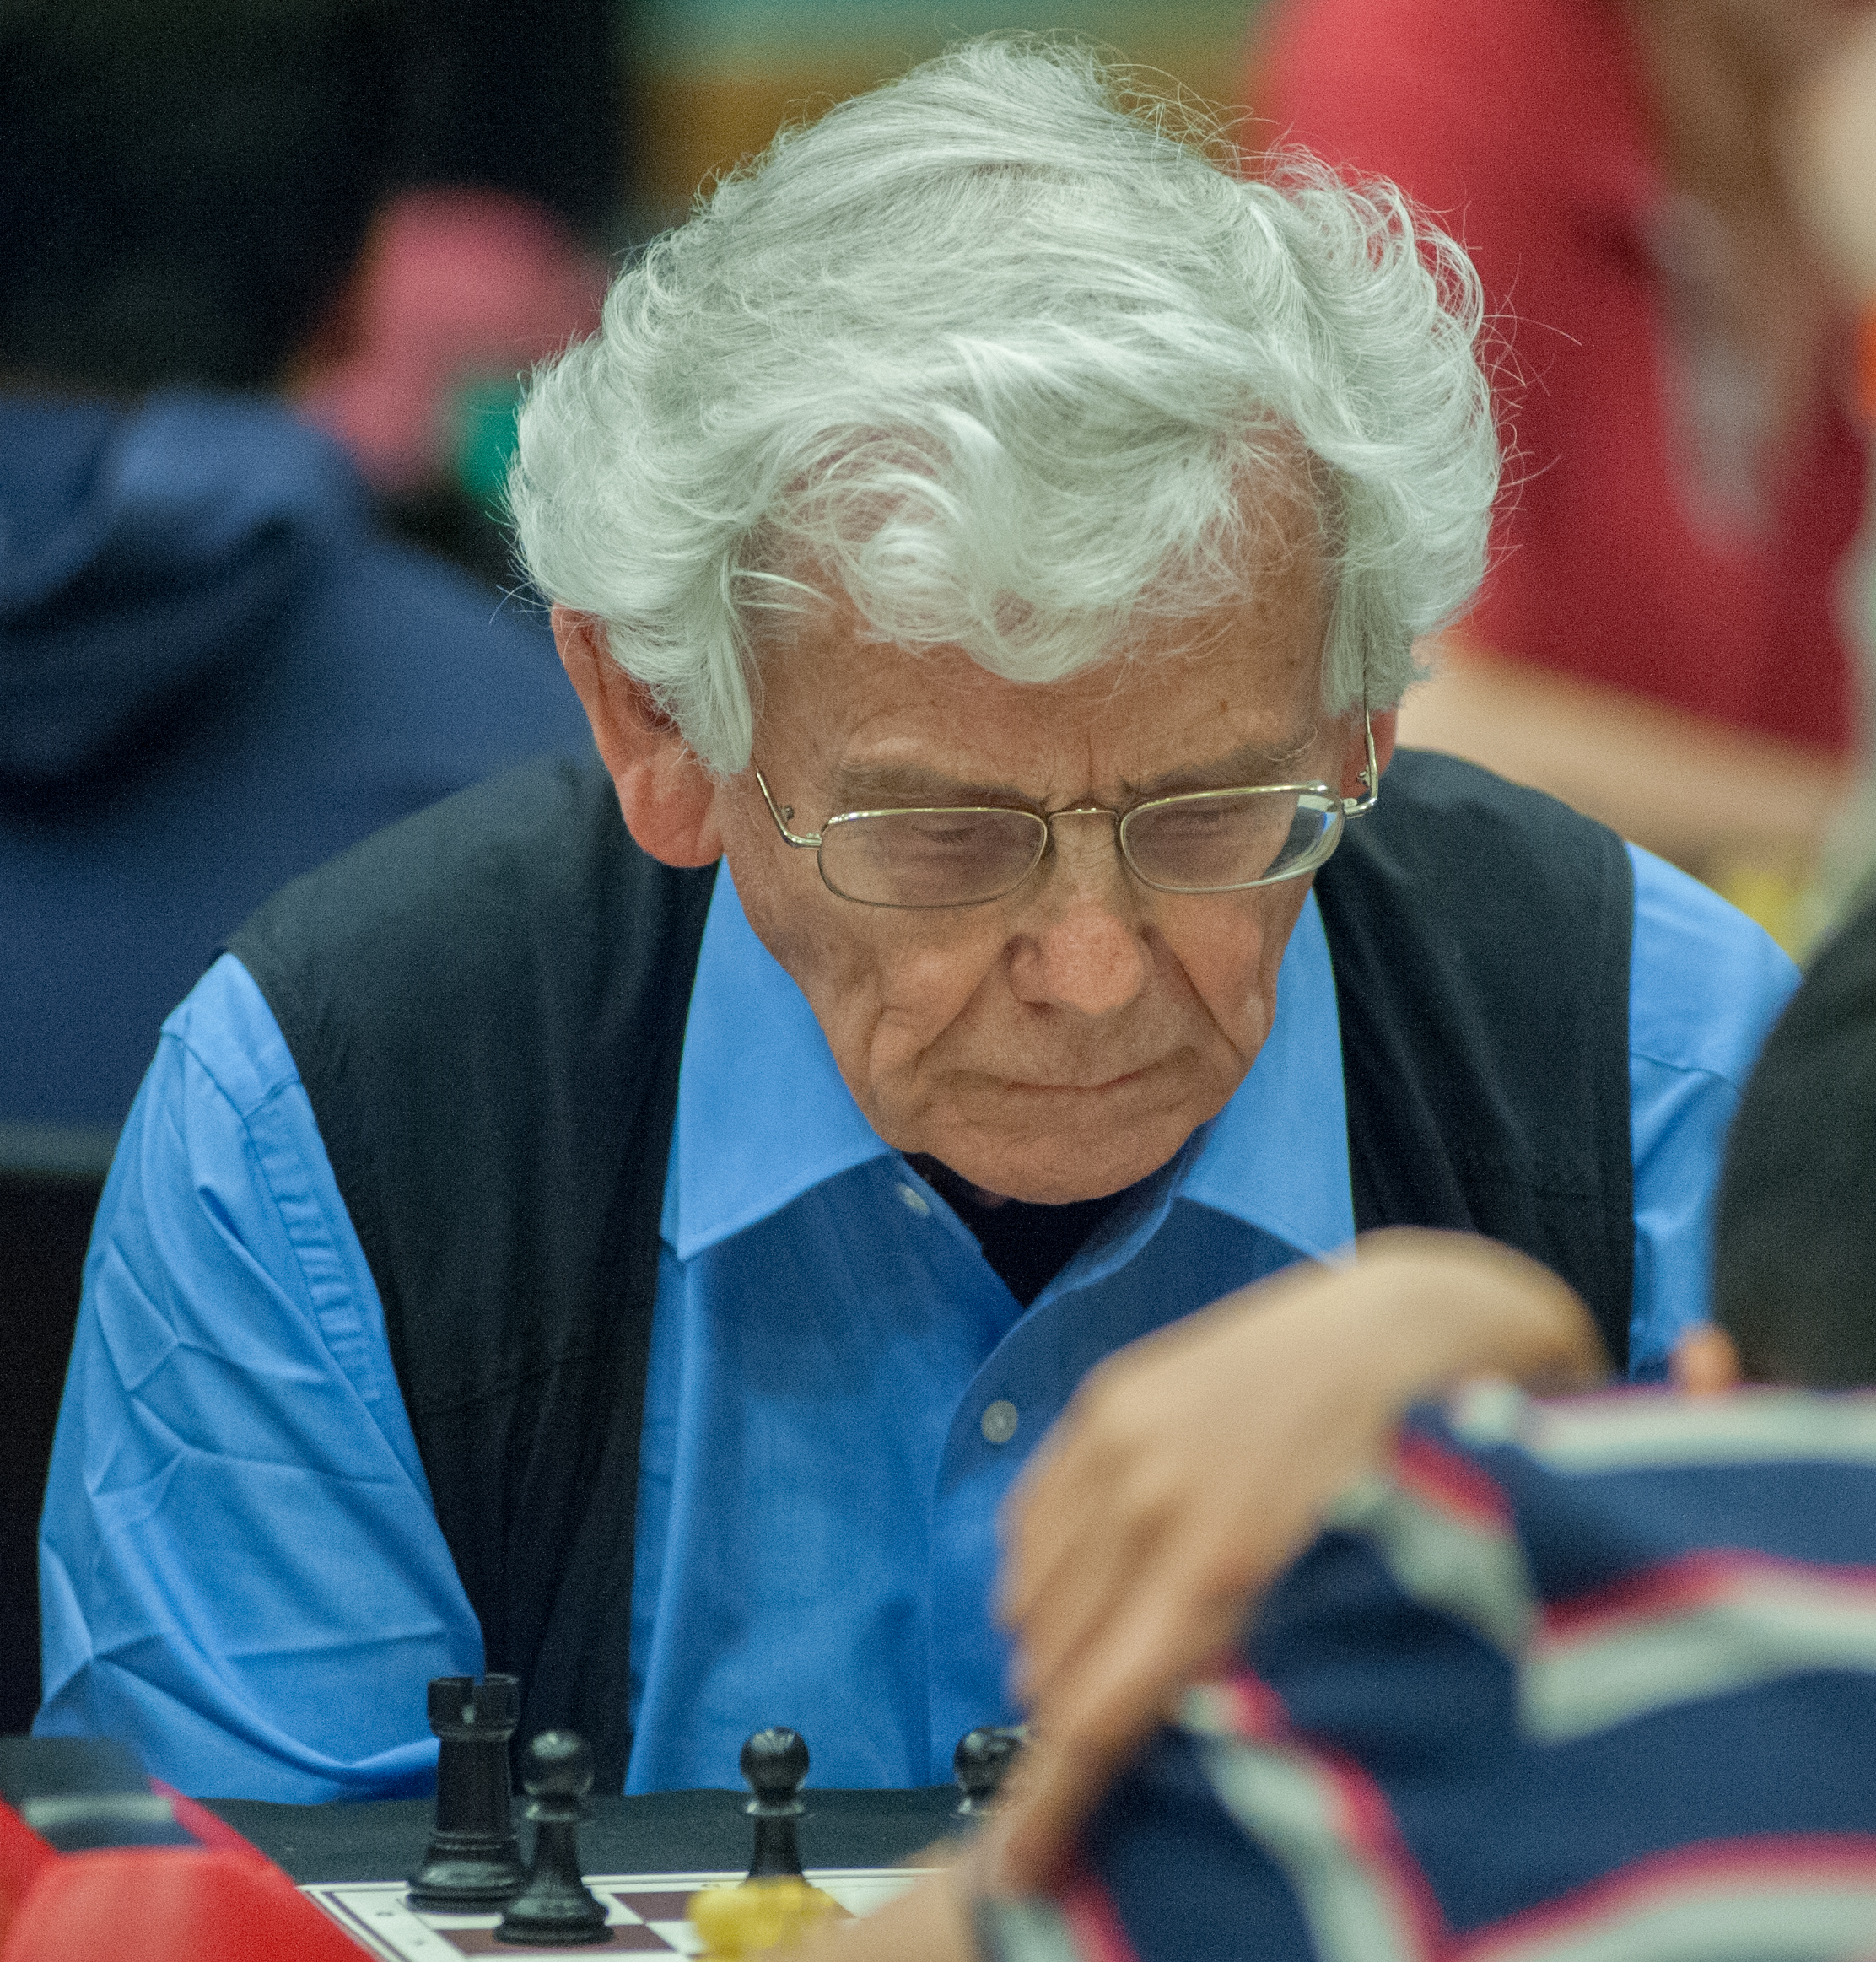 Prof. Julian Farrand at the King's Place Rapidplay, 2013, courtesy of John Upham Photography